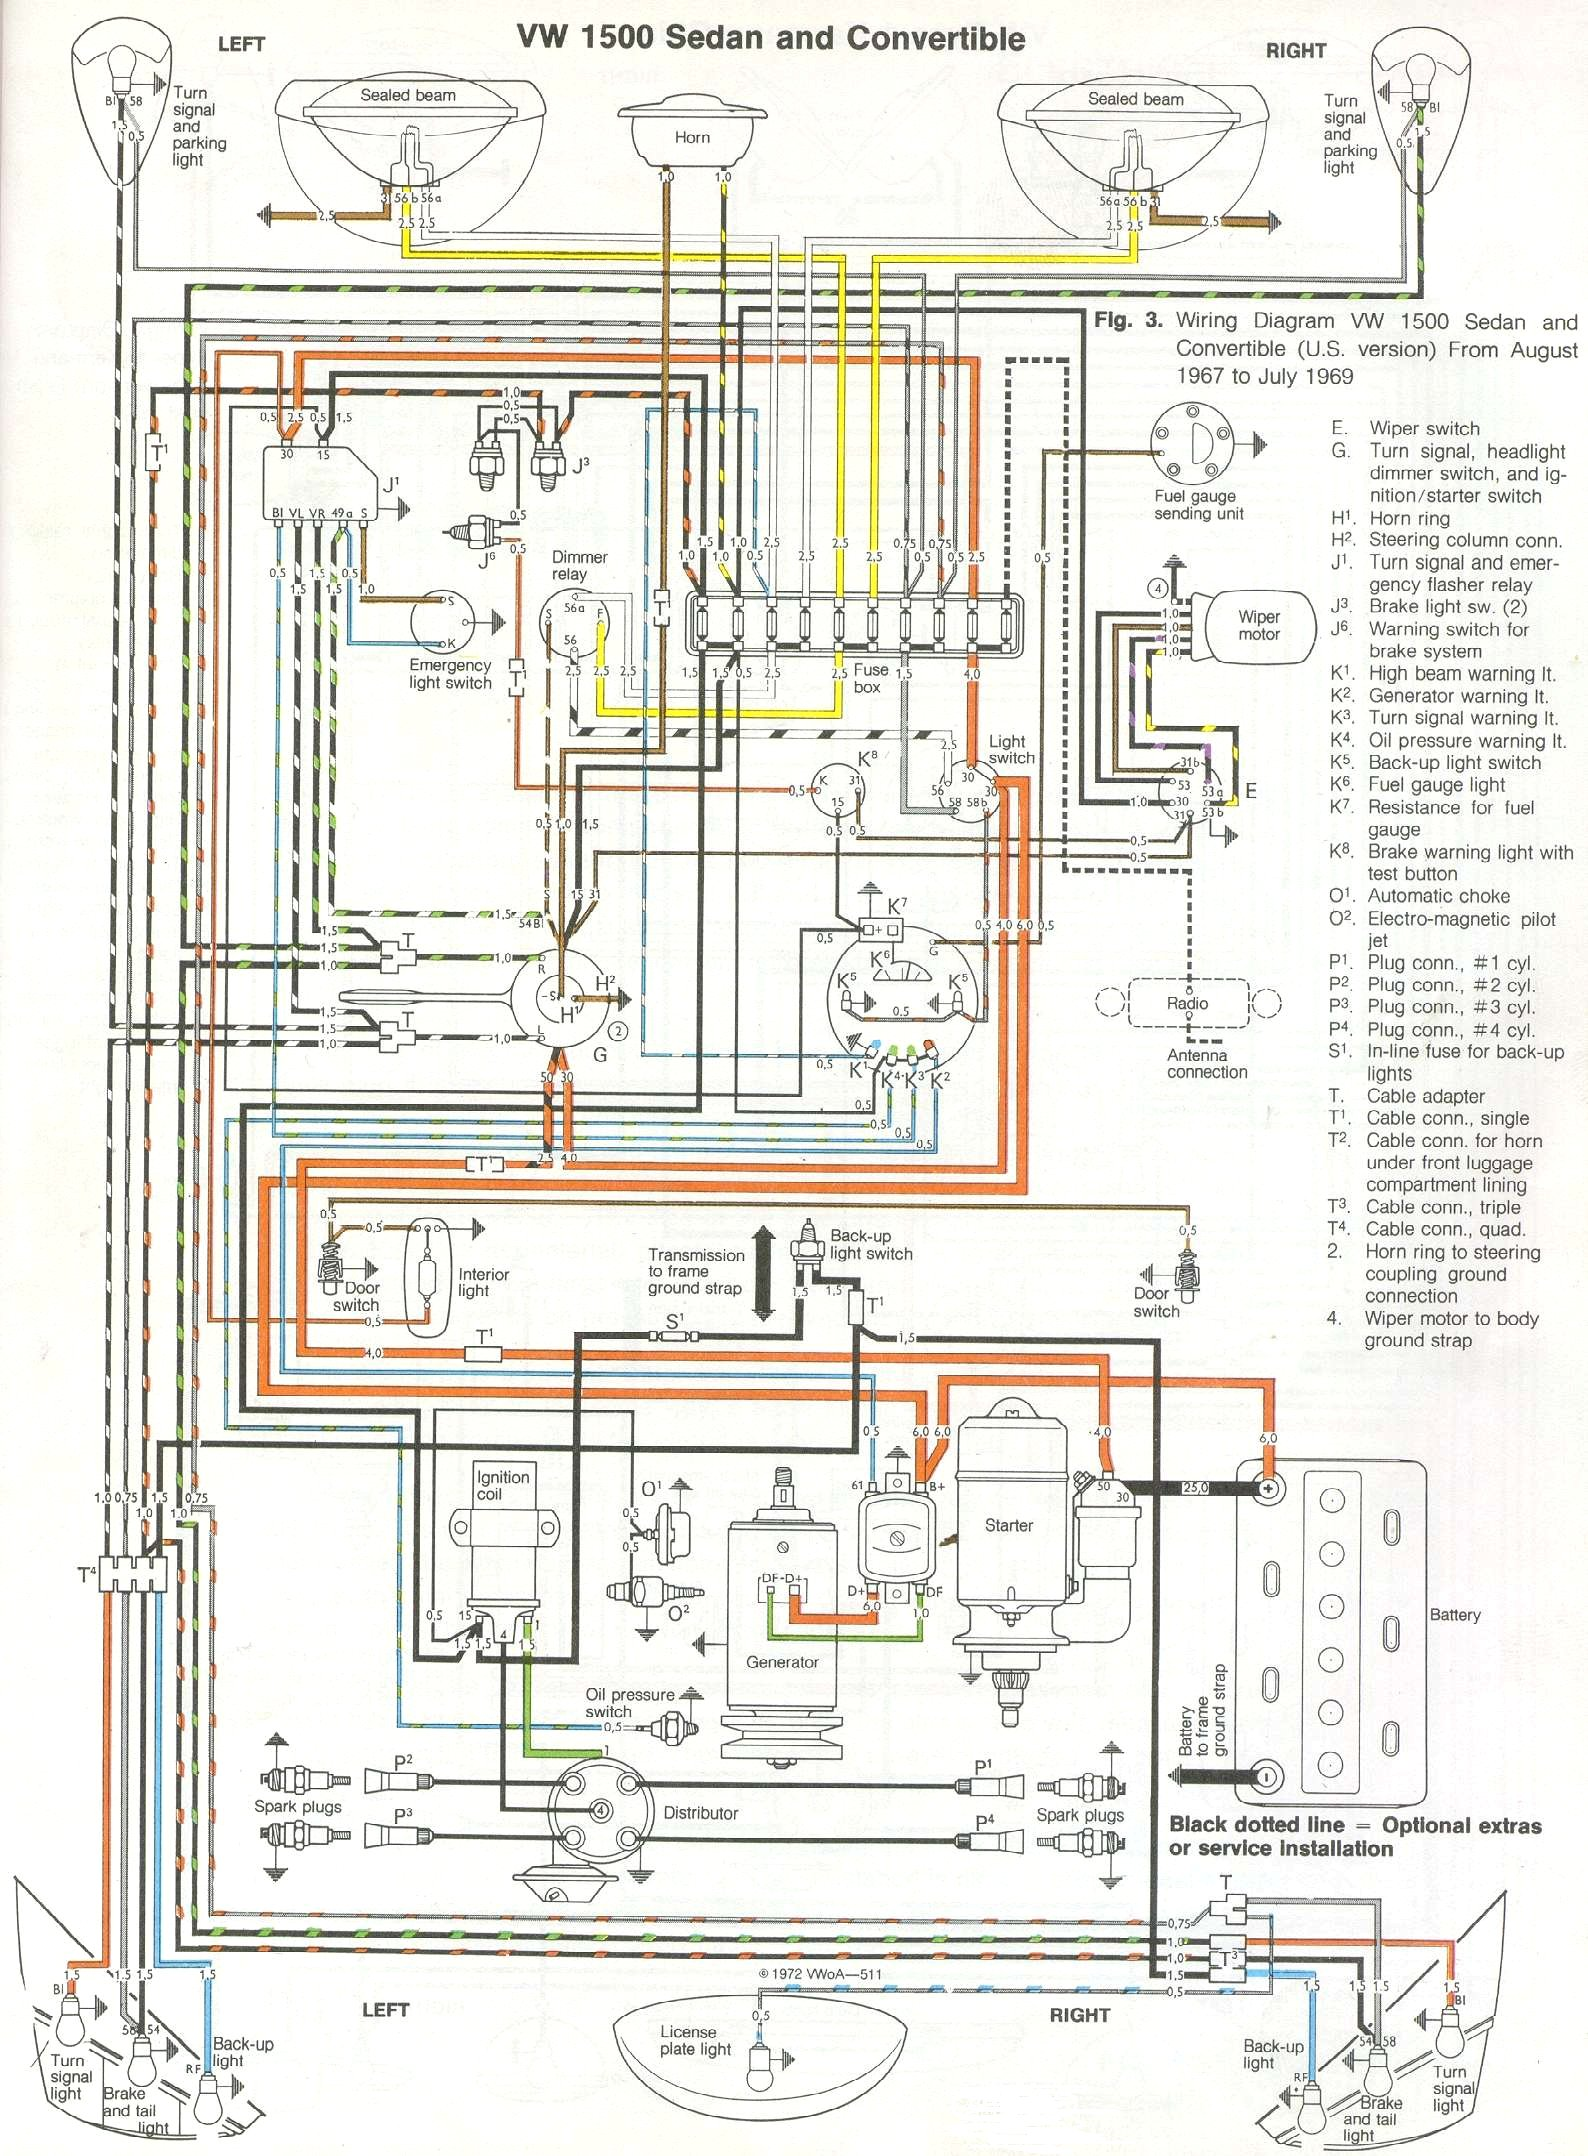 bug_6869 1969 71 beetle wiring diagram thegoldenbug com 1970 vw bug wiring diagram at pacquiaovsvargaslive.co